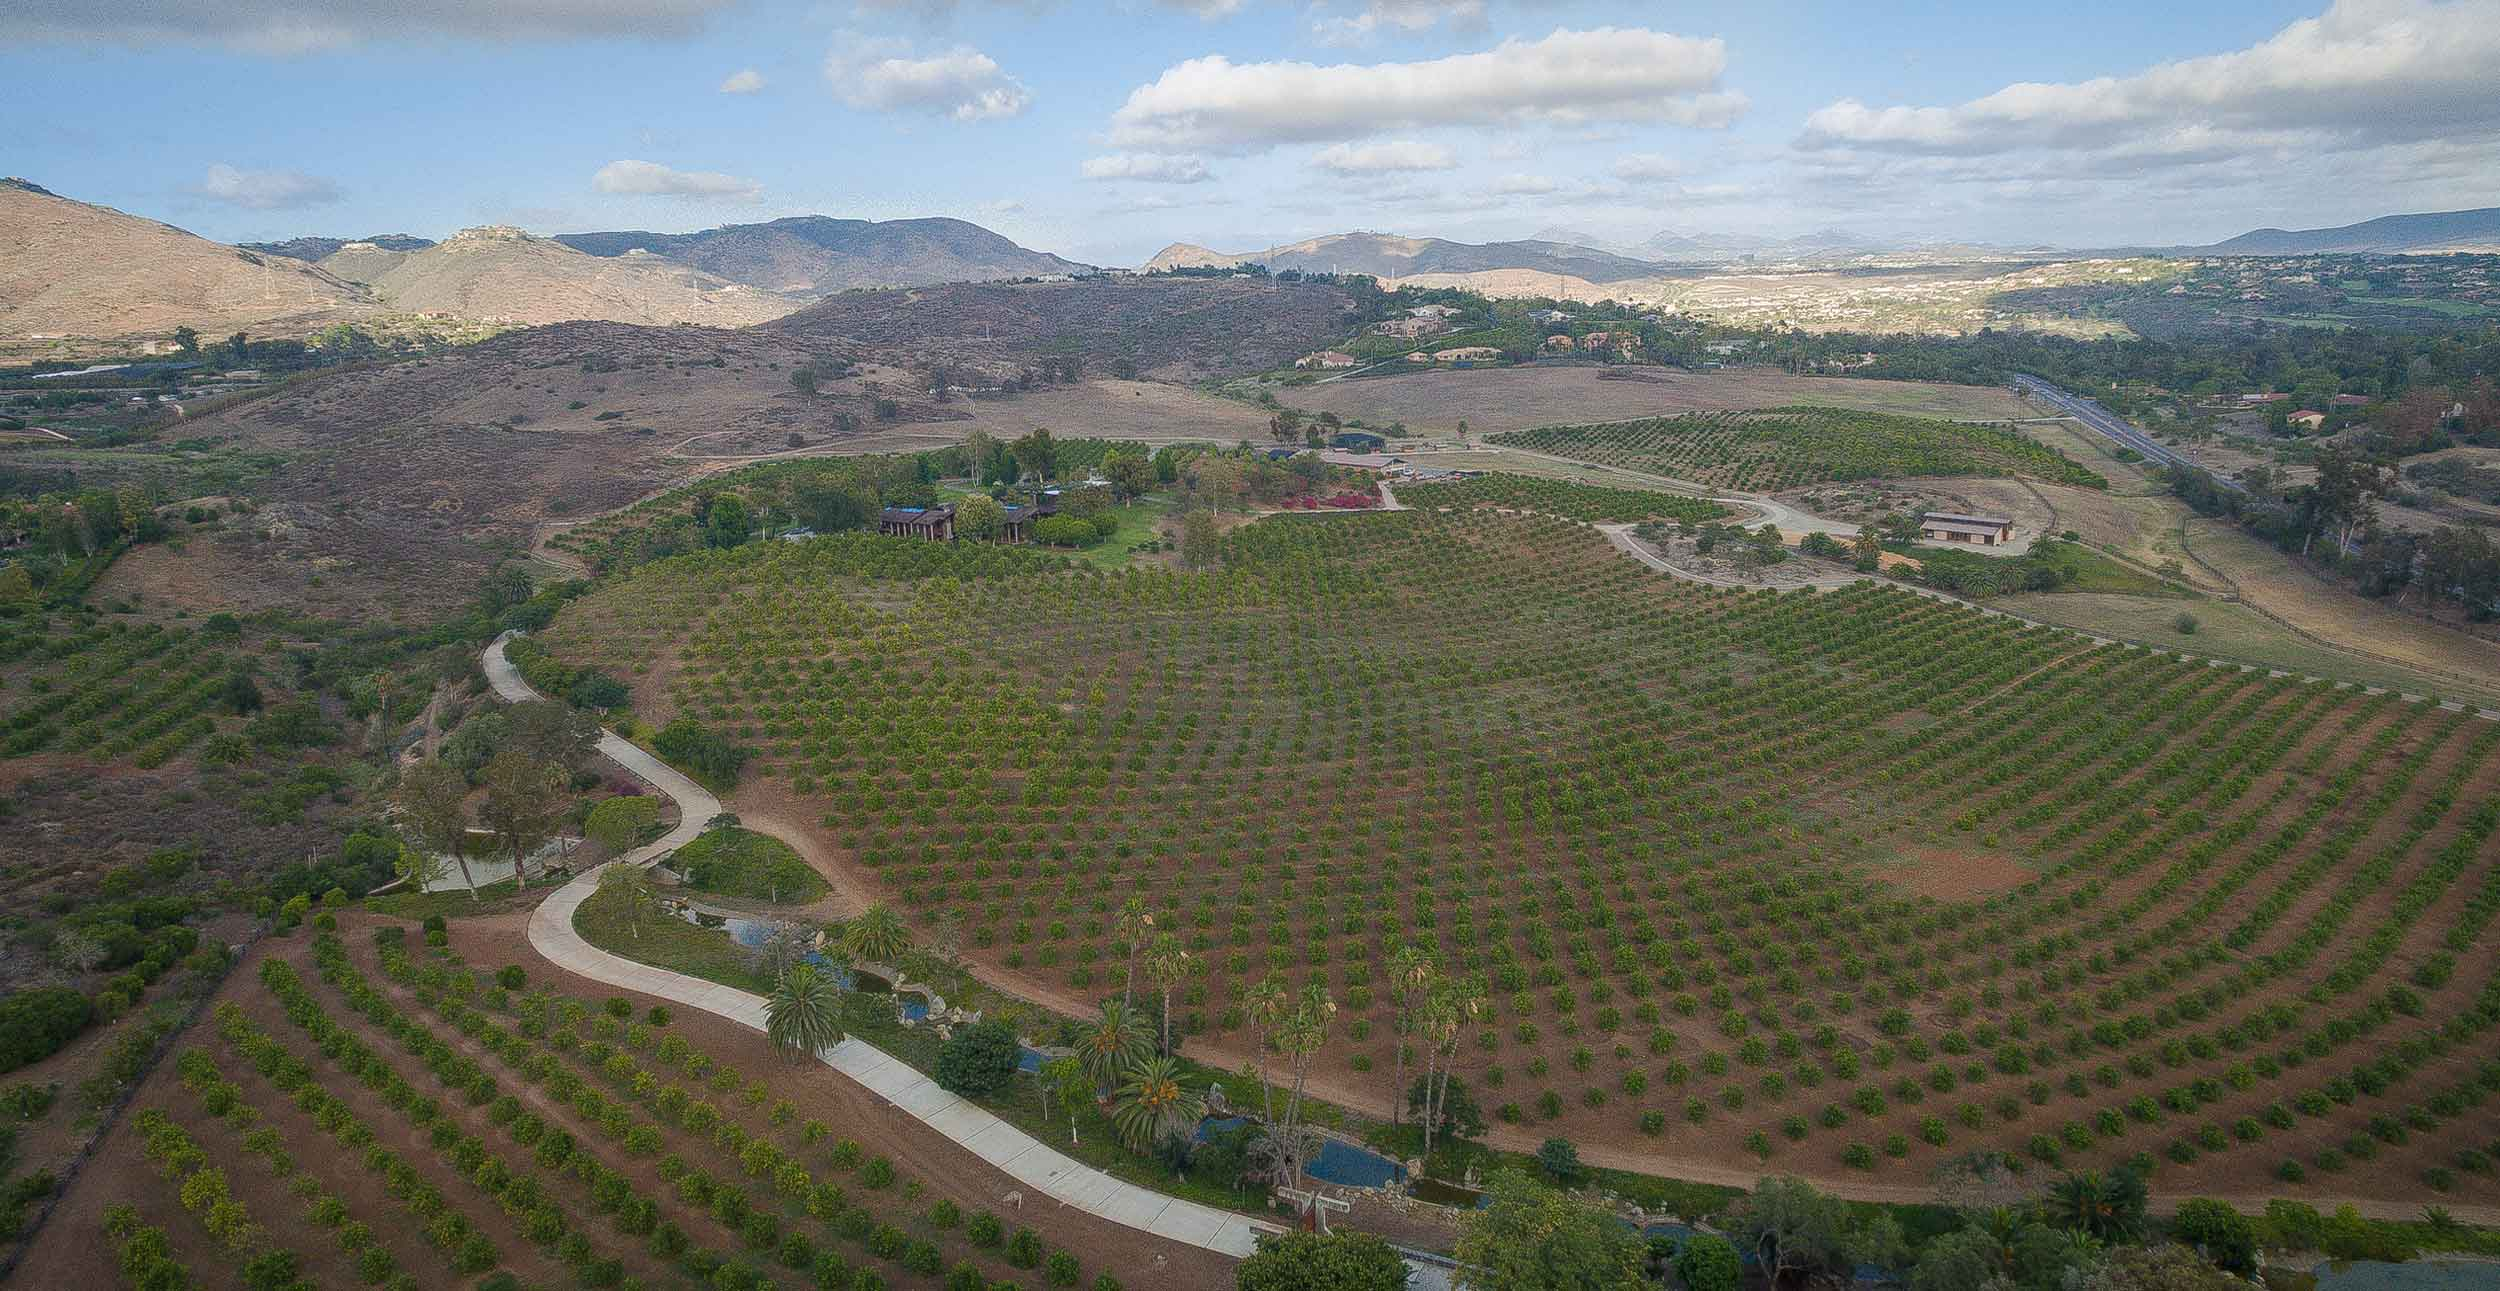 Del Dios Ranch presents an outstanding opportunity to acquire one of the most expansive tracts in coveted Rancho Santa Fe, California. The property includes a 40-acre Valencia orange grove.